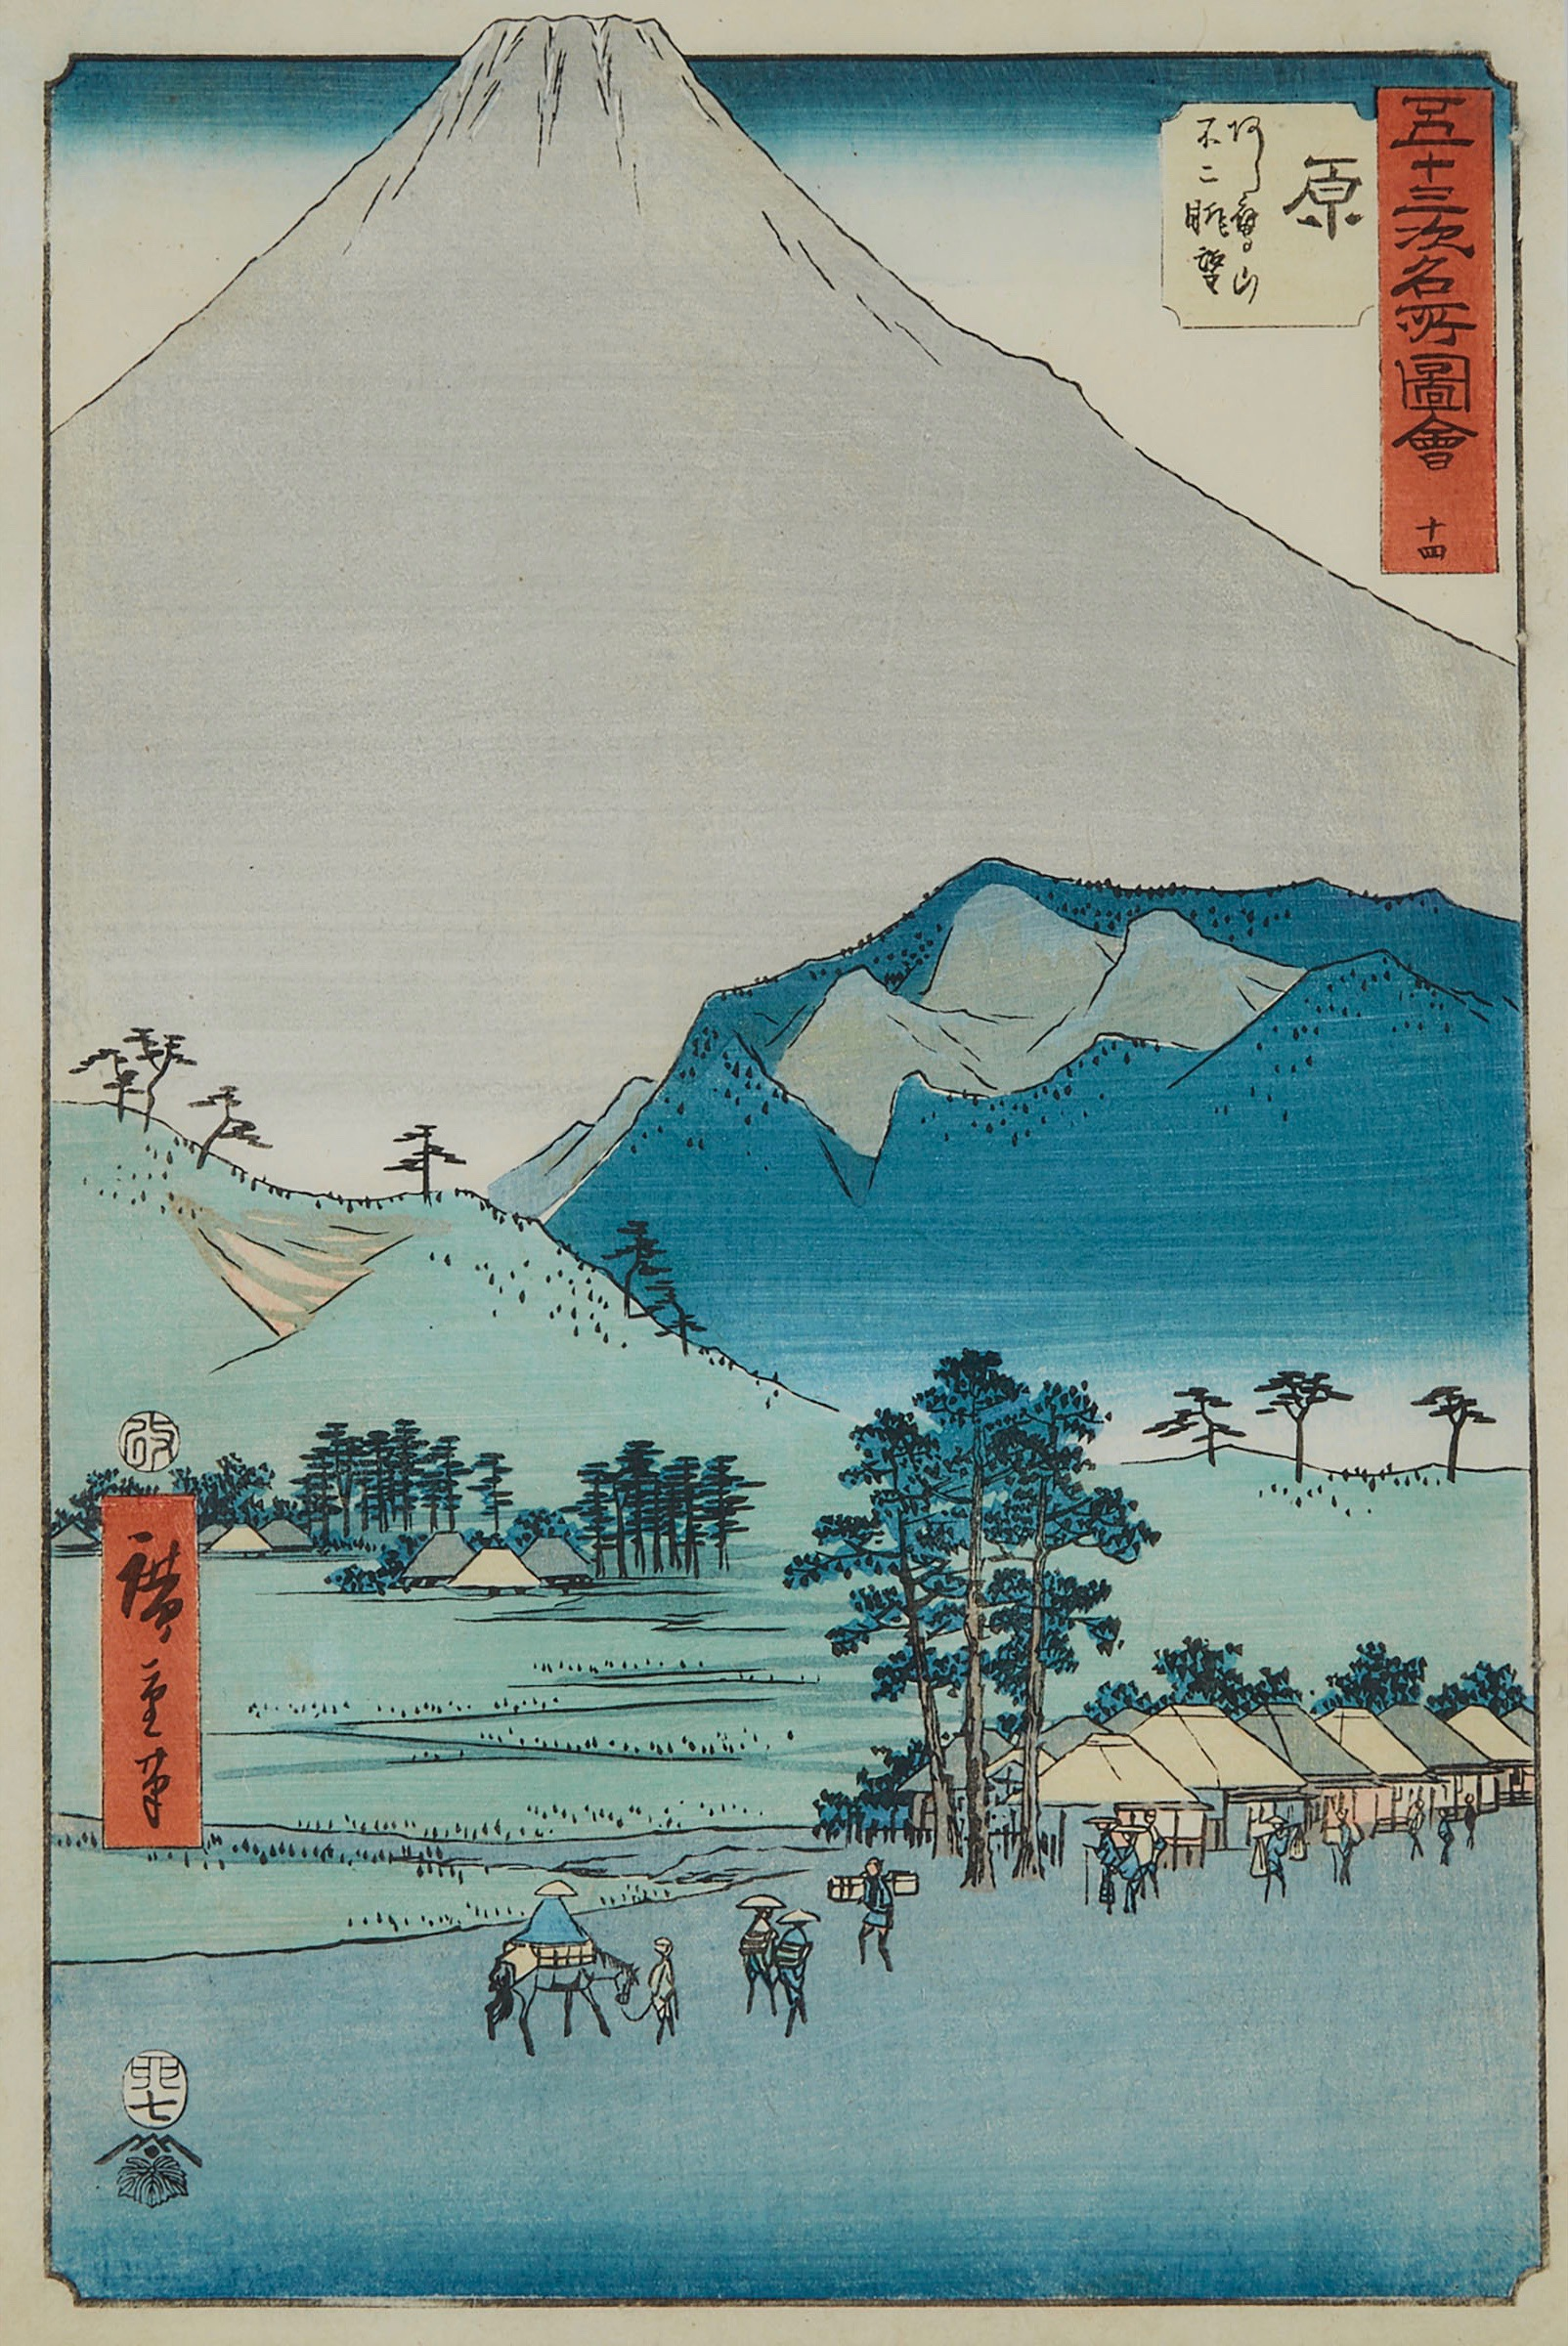 Collecting Ukiyo-e, or Japanese Woodblock Prints